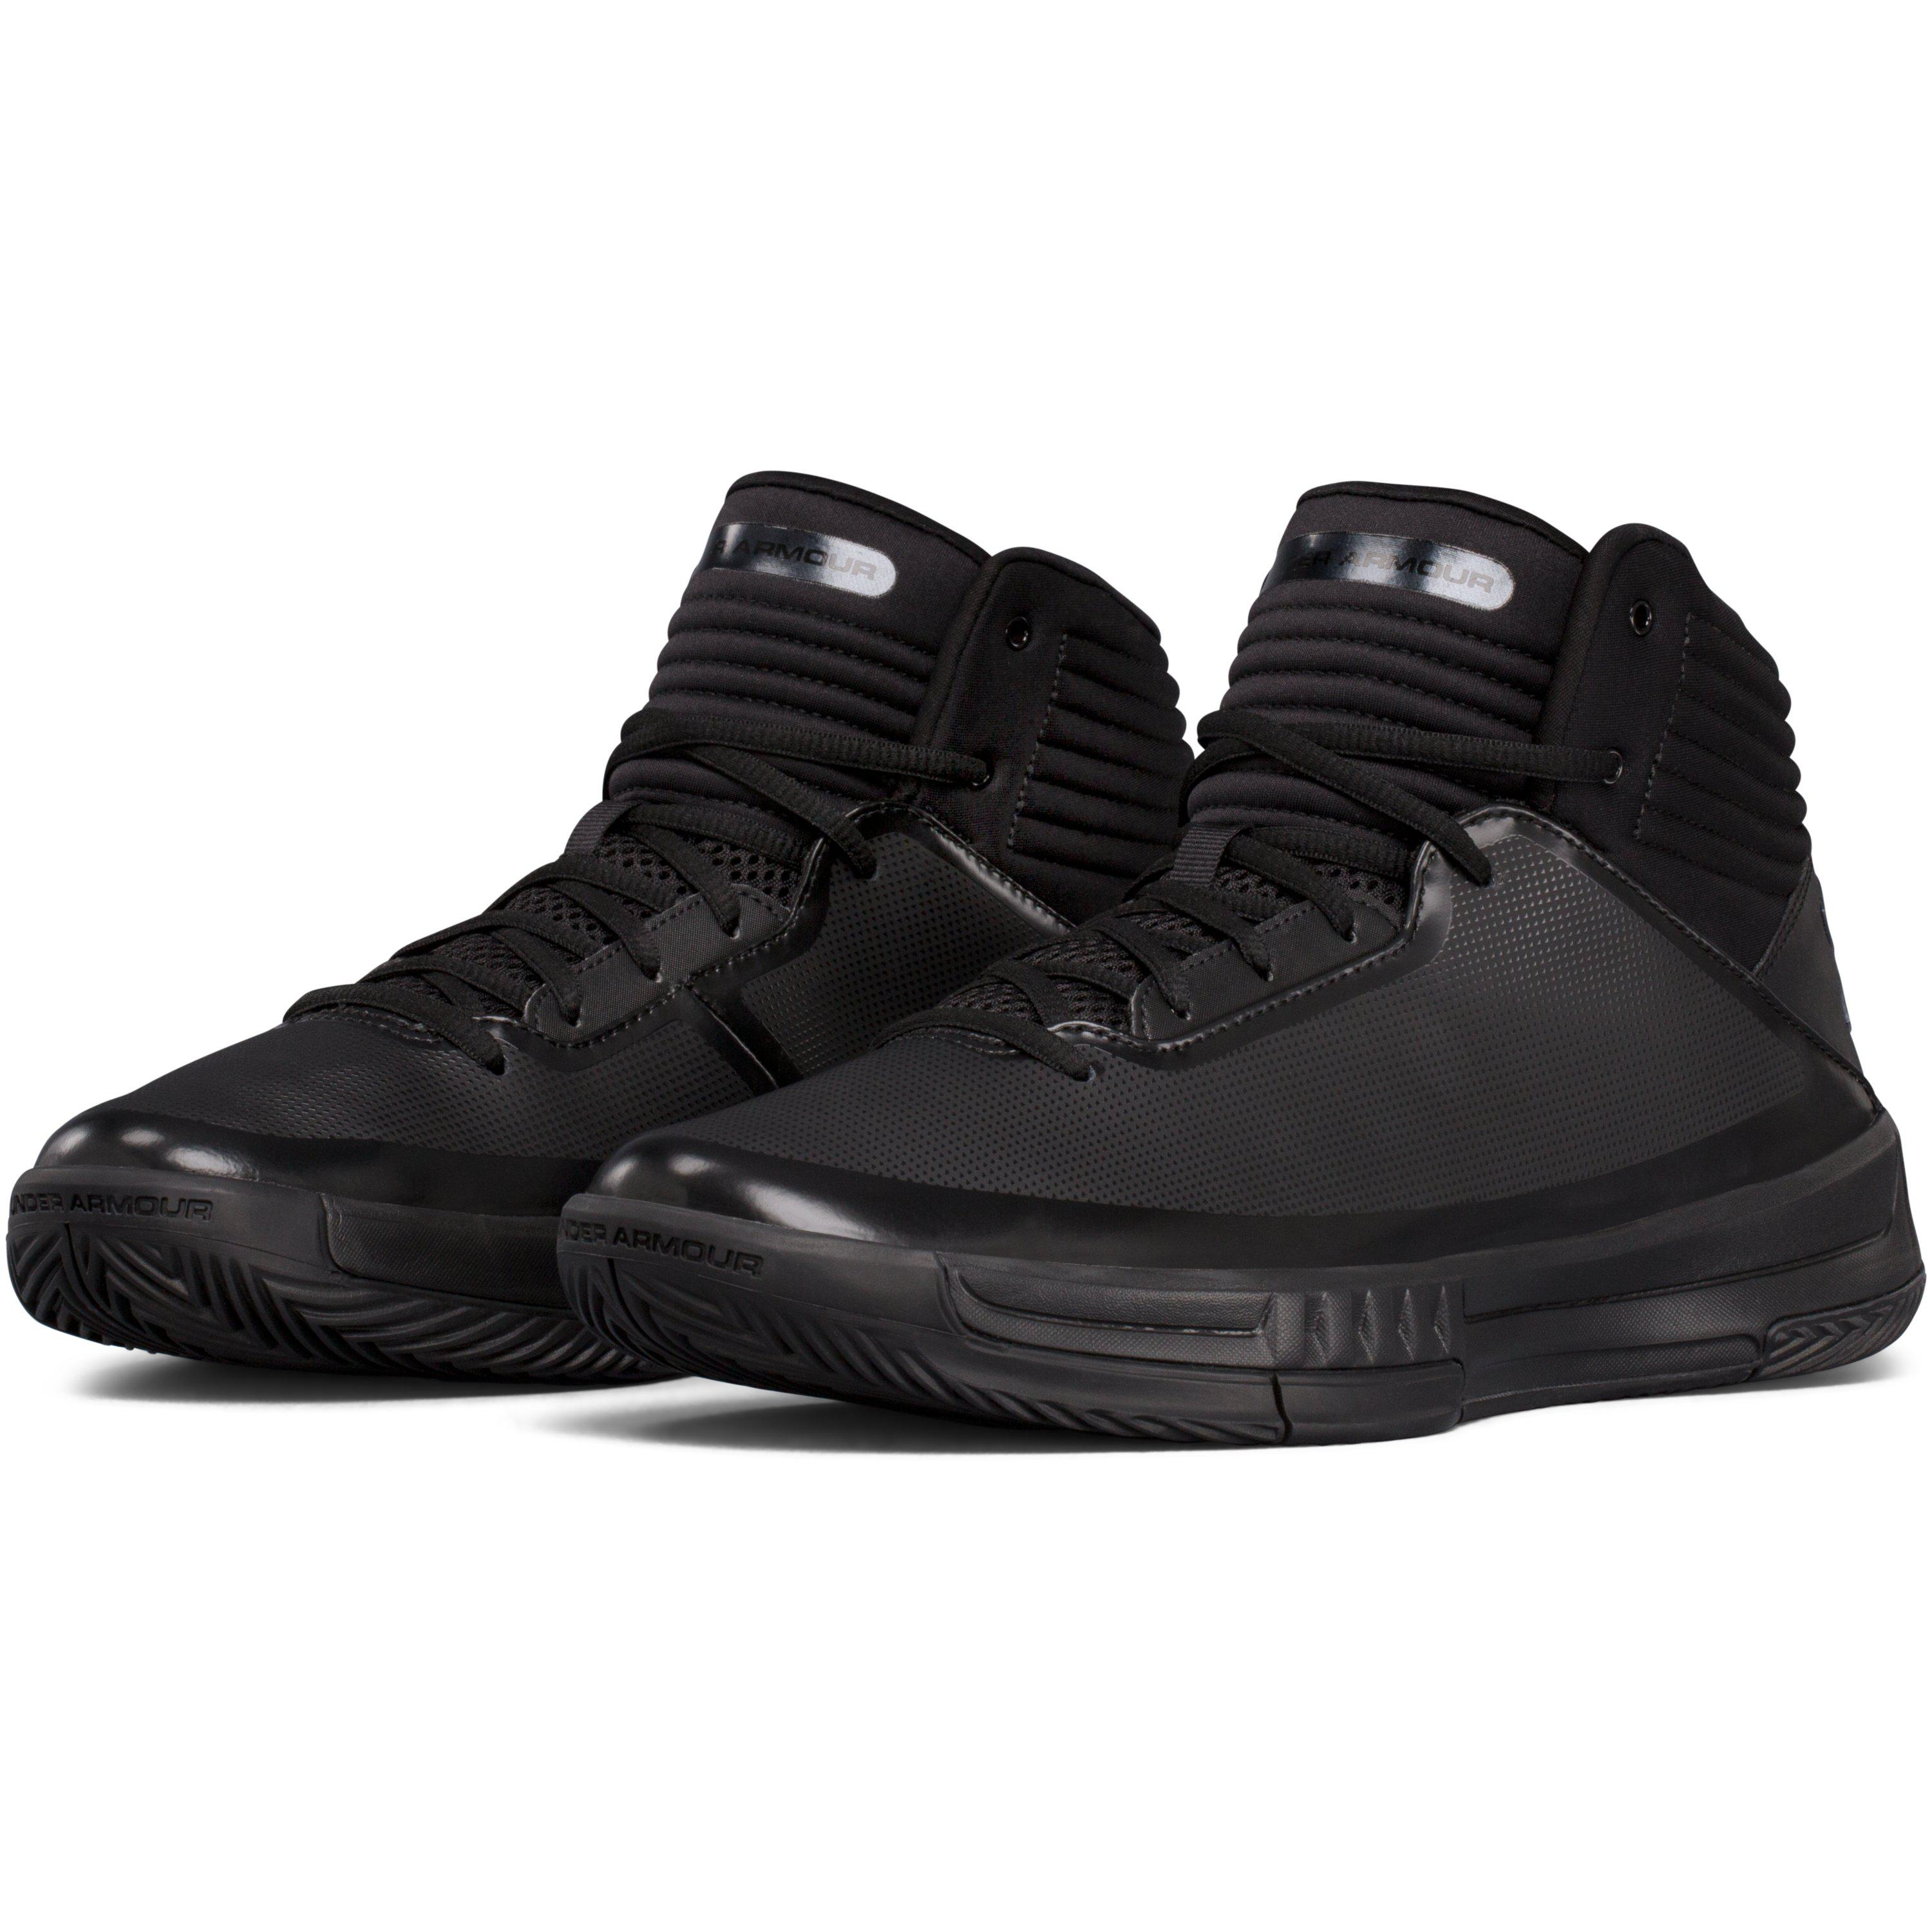 f0024da10db3 Lyst - Under Armour Men s Ua Lockdown 2 Basketball Shoes in Black ...